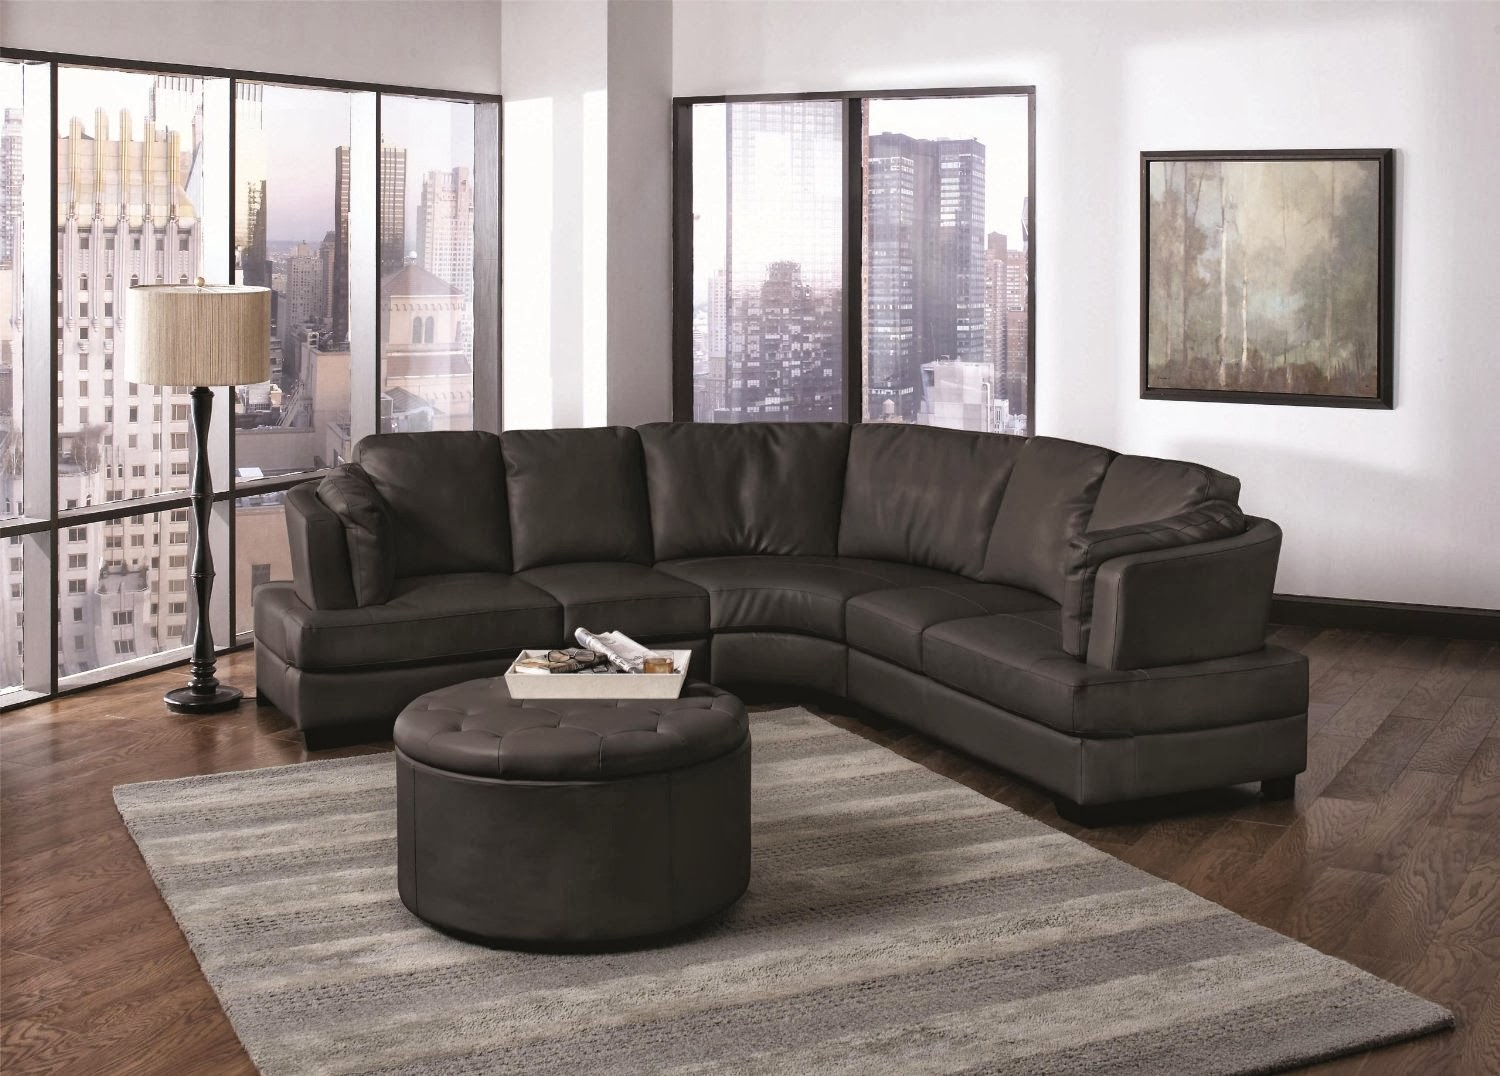 Buy Curved Sofa Online: Curved Leather Sectional Sofa